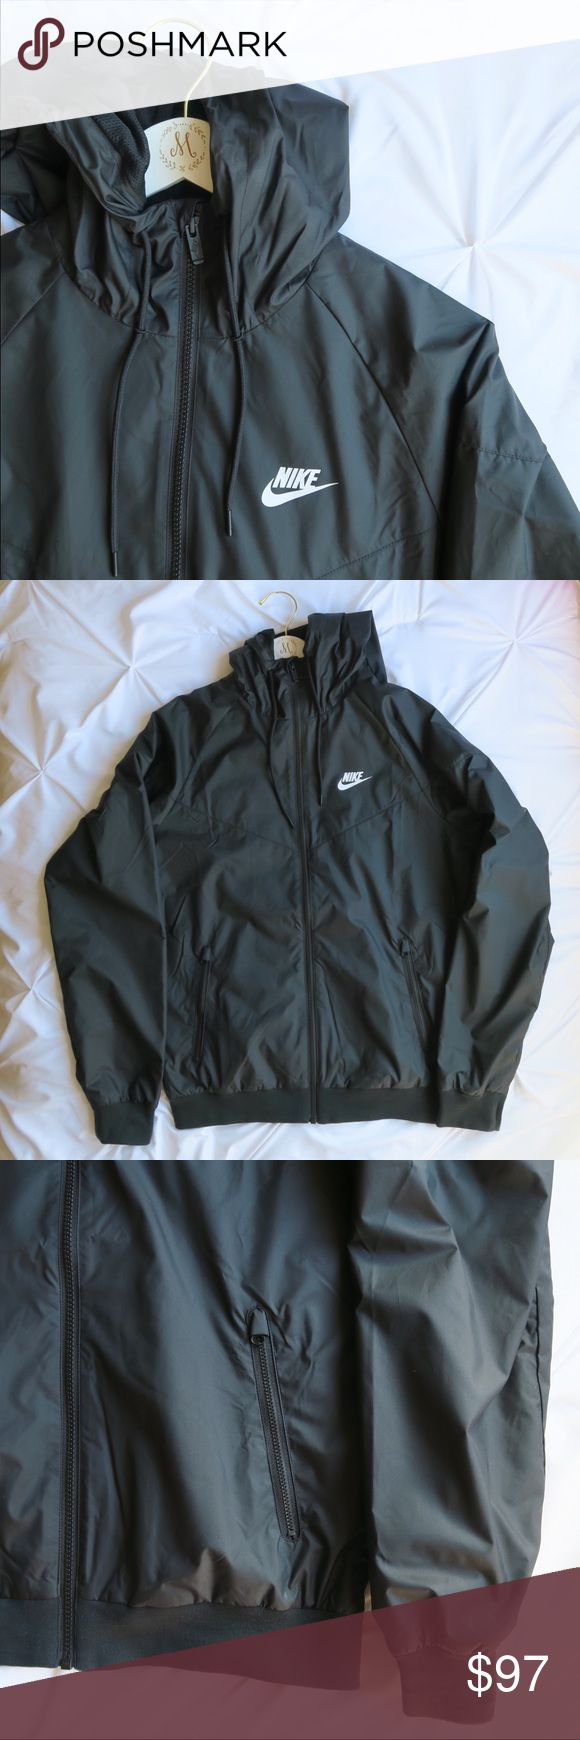 Men's Nike Sportwear Windrunner MEN'S NIKE SPORTSWEAR WINDRUNNER Size Small NWT Retail Price $100  🚫 No trades 📦 Will ship next day, or even same day ✨ Open to reasonable offers 💡 Bundle to save on shipping Nike Jackets & Coats